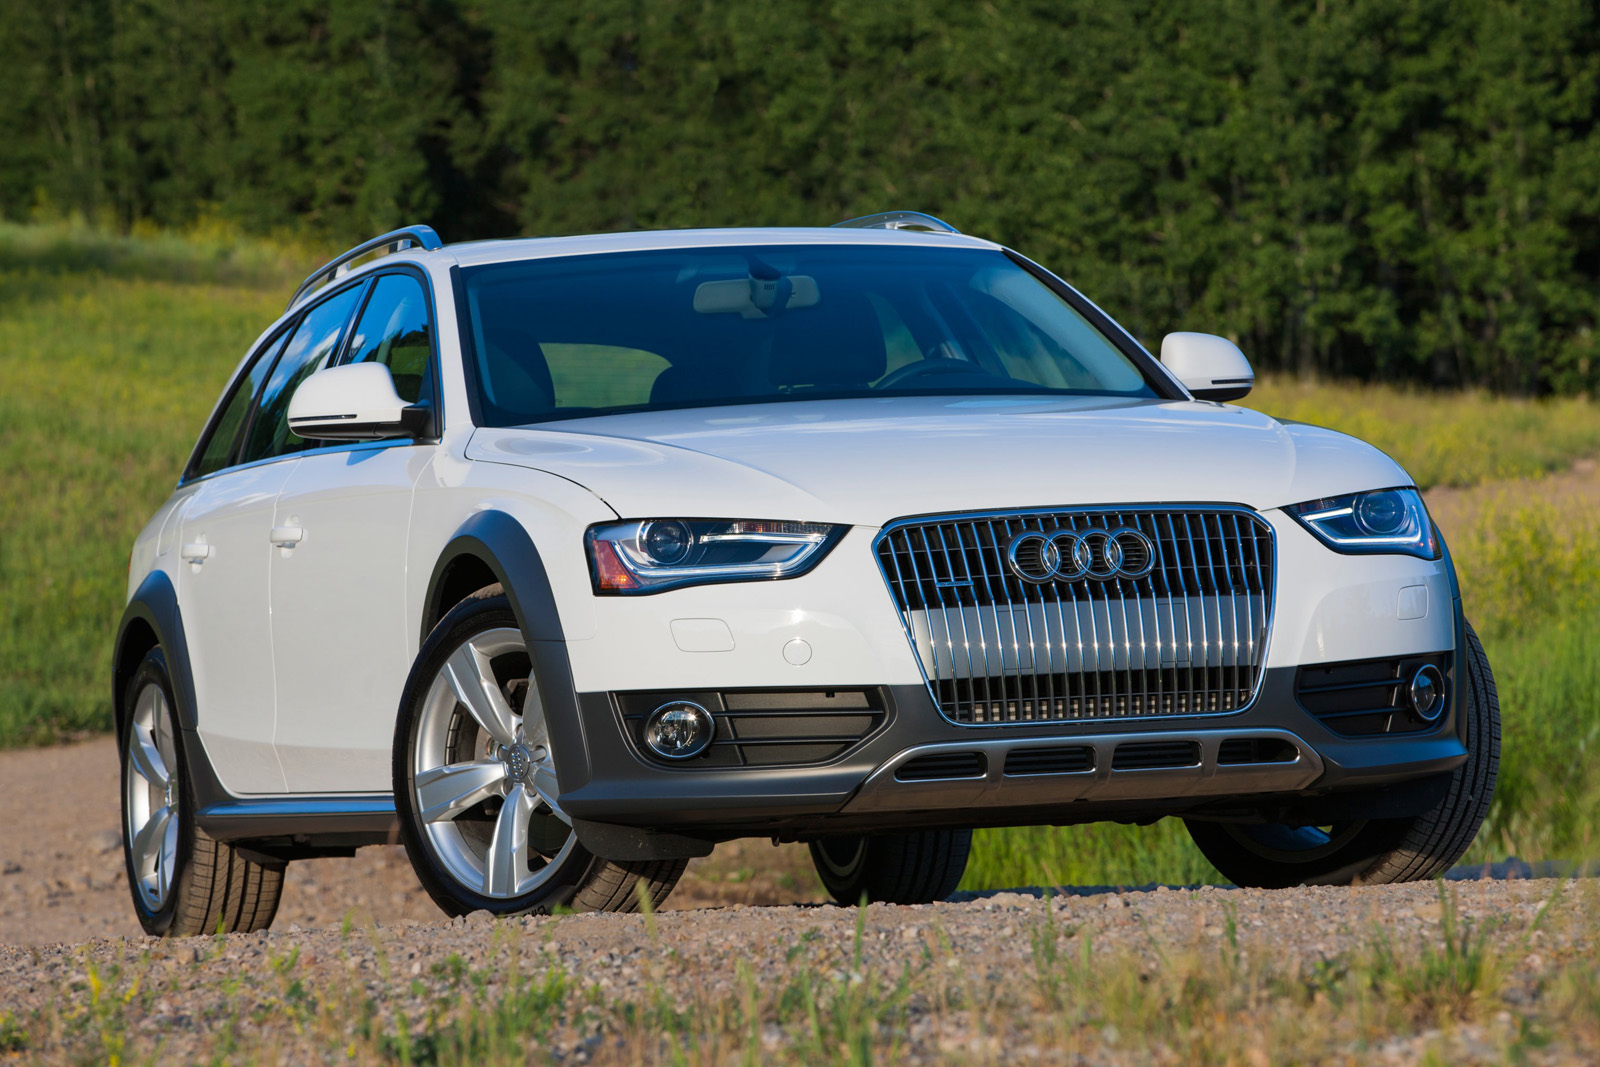 en calgary sports glenmore vehicle for sale tiptronic in quattro allroad package technik audi inventory used